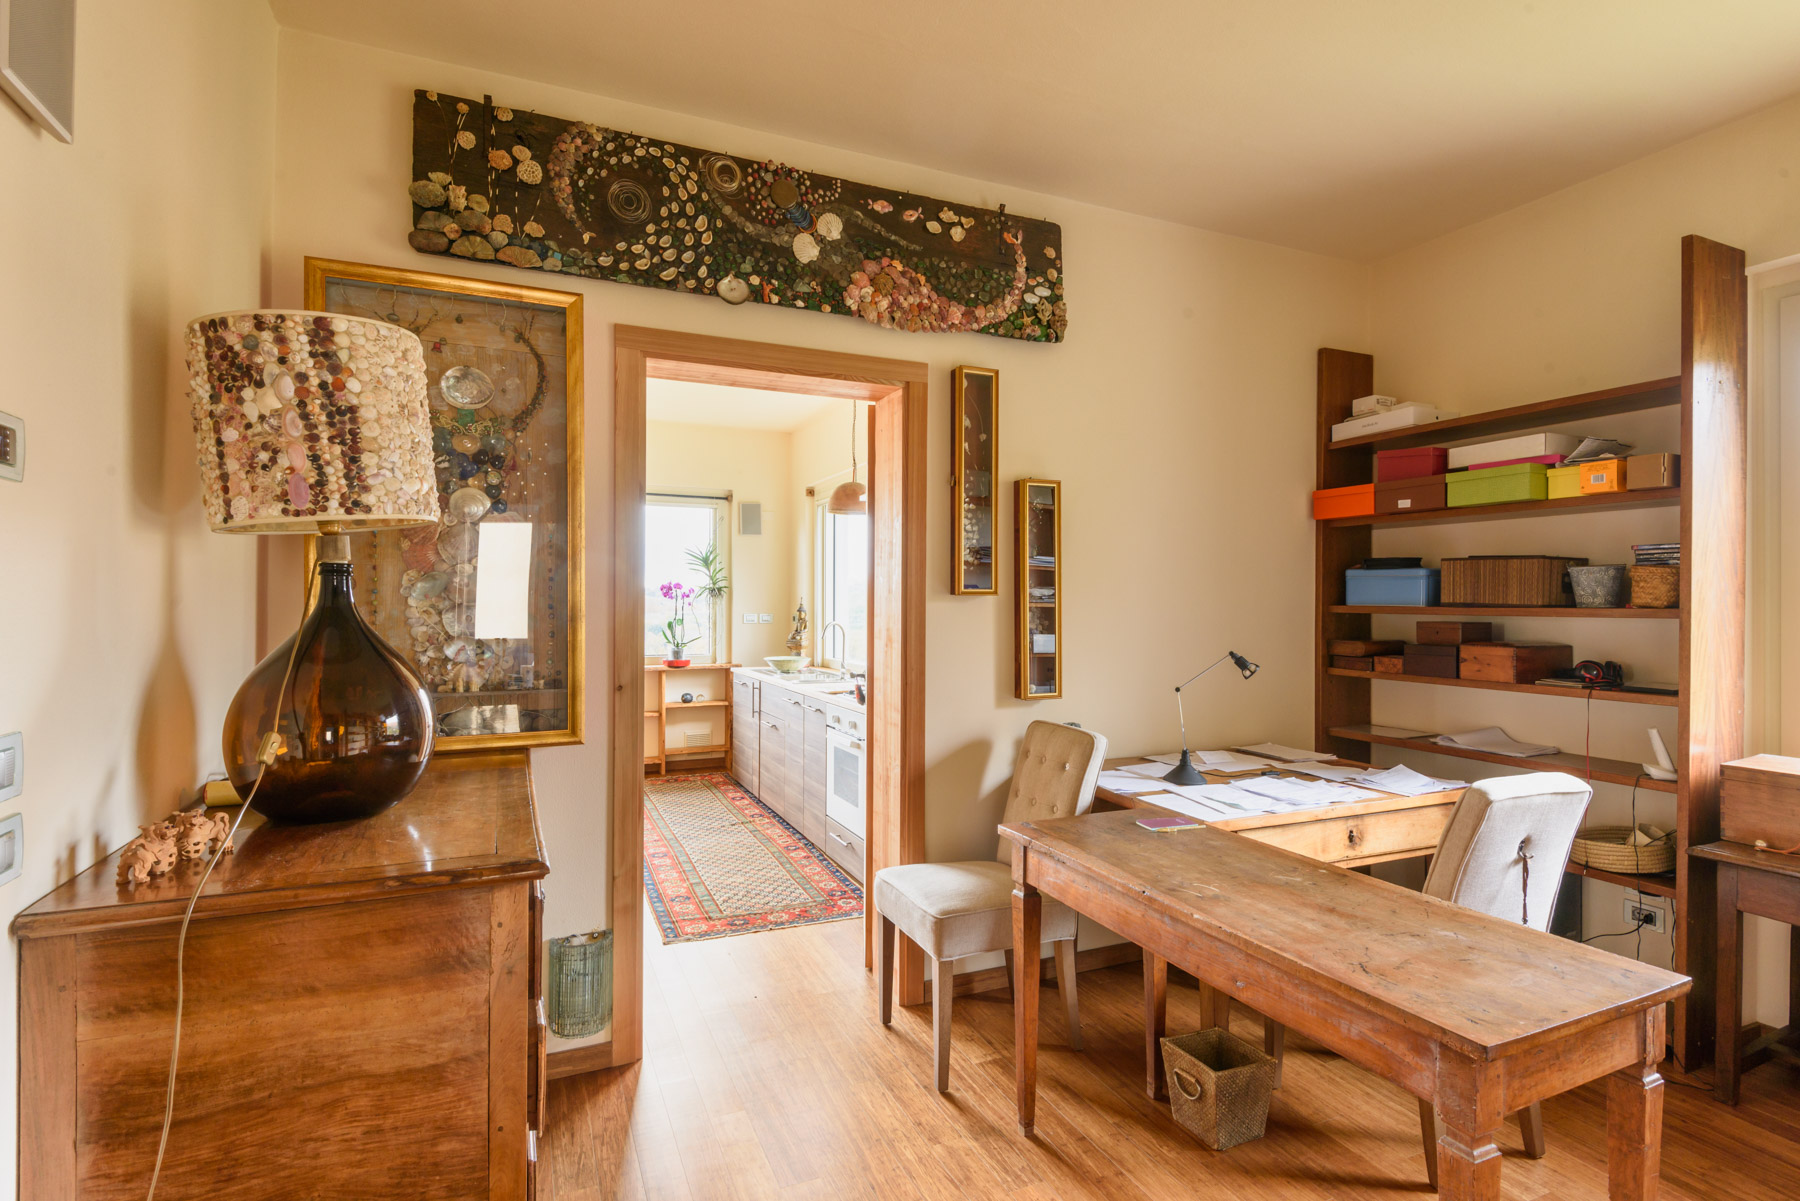 Additional photo for property listing at Marvelous small villa eco-sustainable in the heart of Tuscan countryside Via Venezia Other Arezzo, Arezzo 52026 Italia